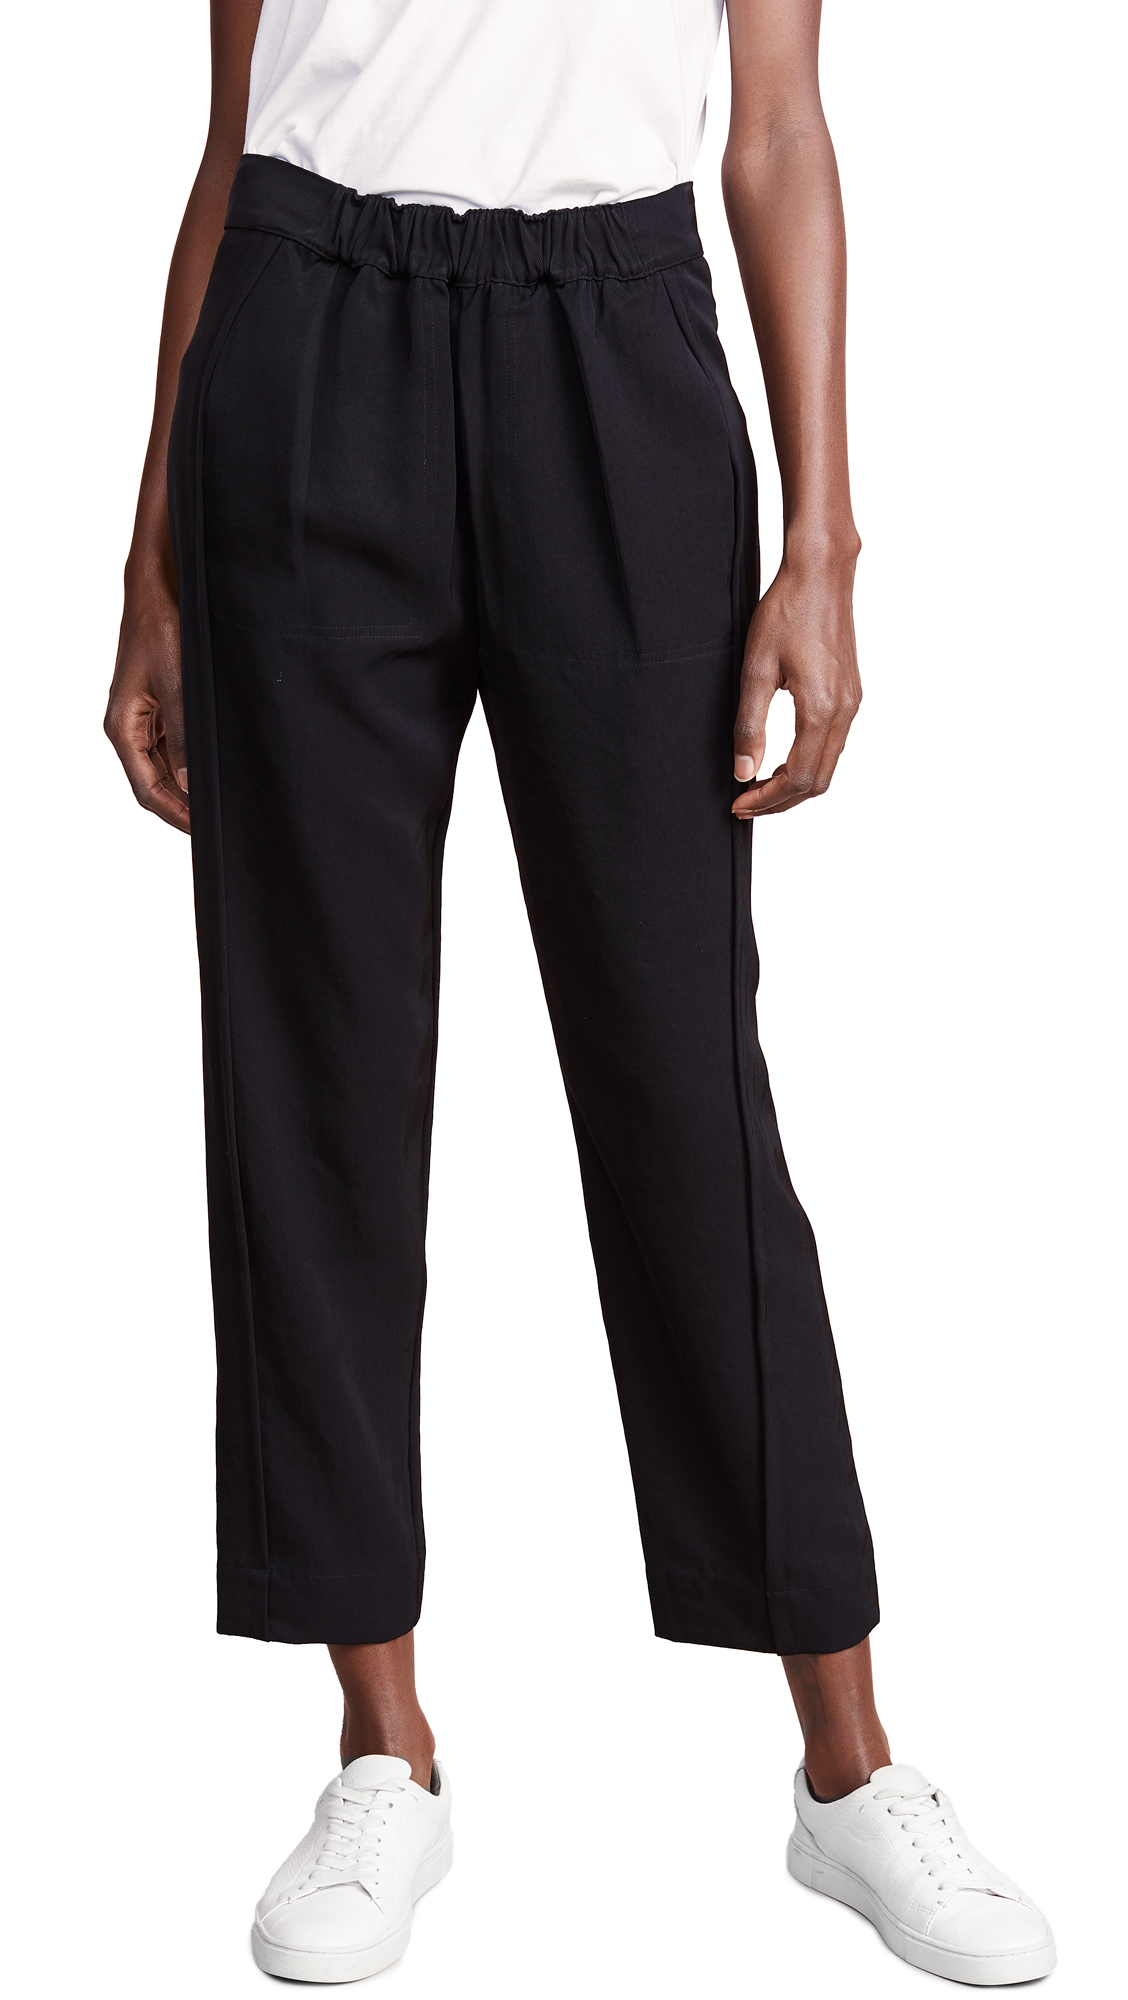 AYR The Estate Pants in Black